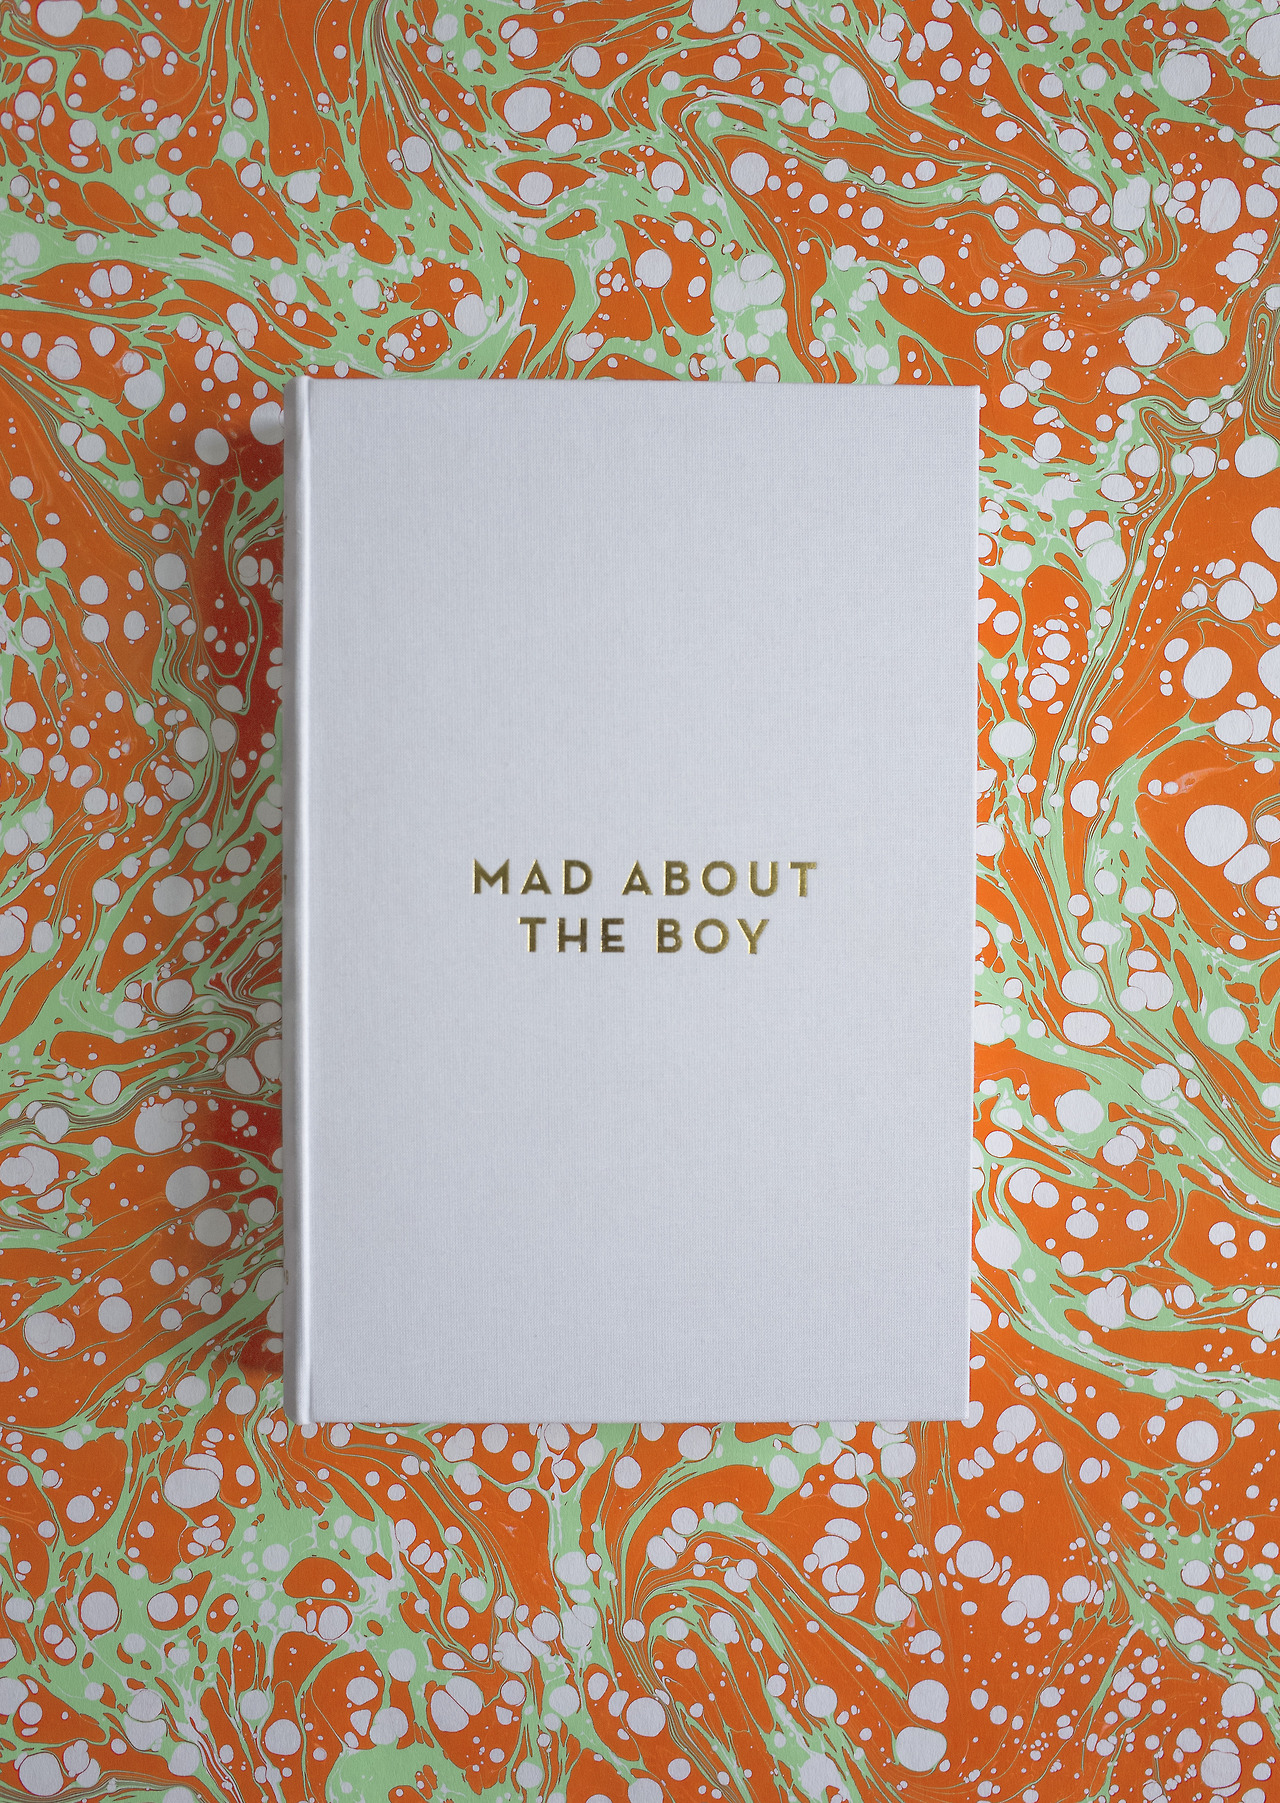 bridget-jones-mad-about-the-boy-limited-edition